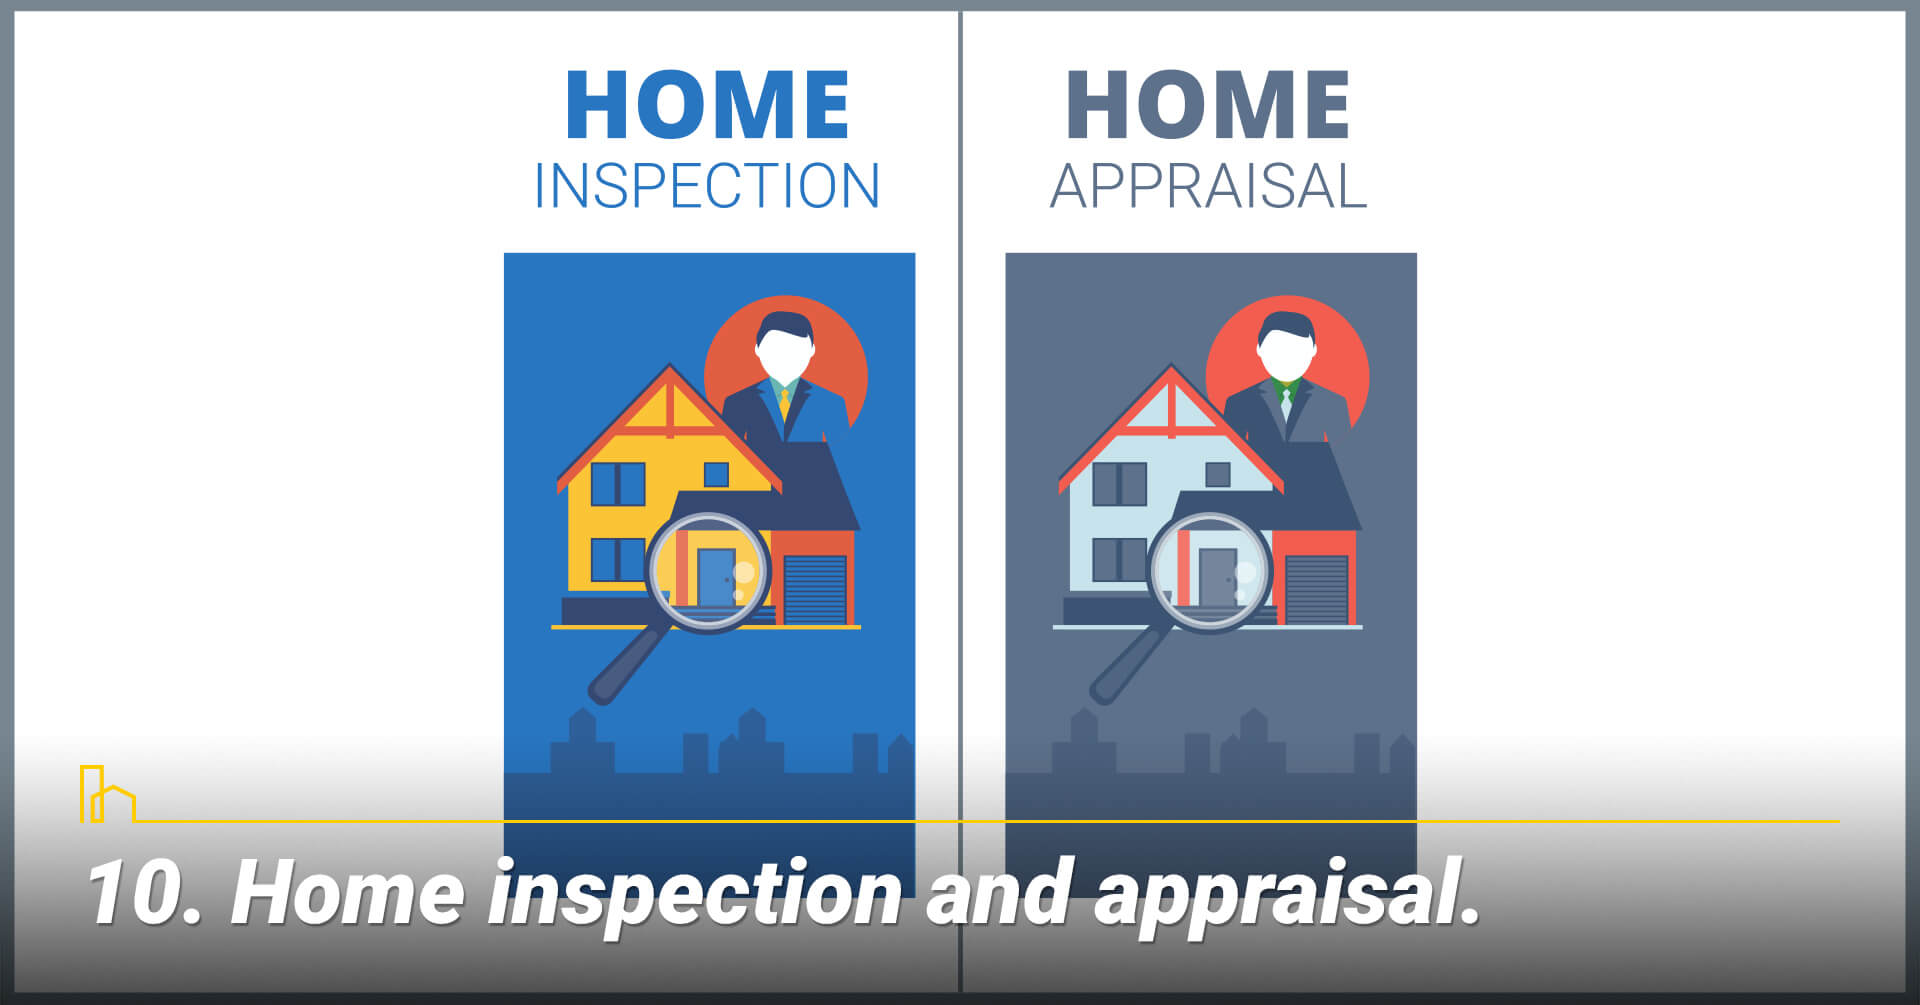 Home inspection and appraisal, final steps in selling your home